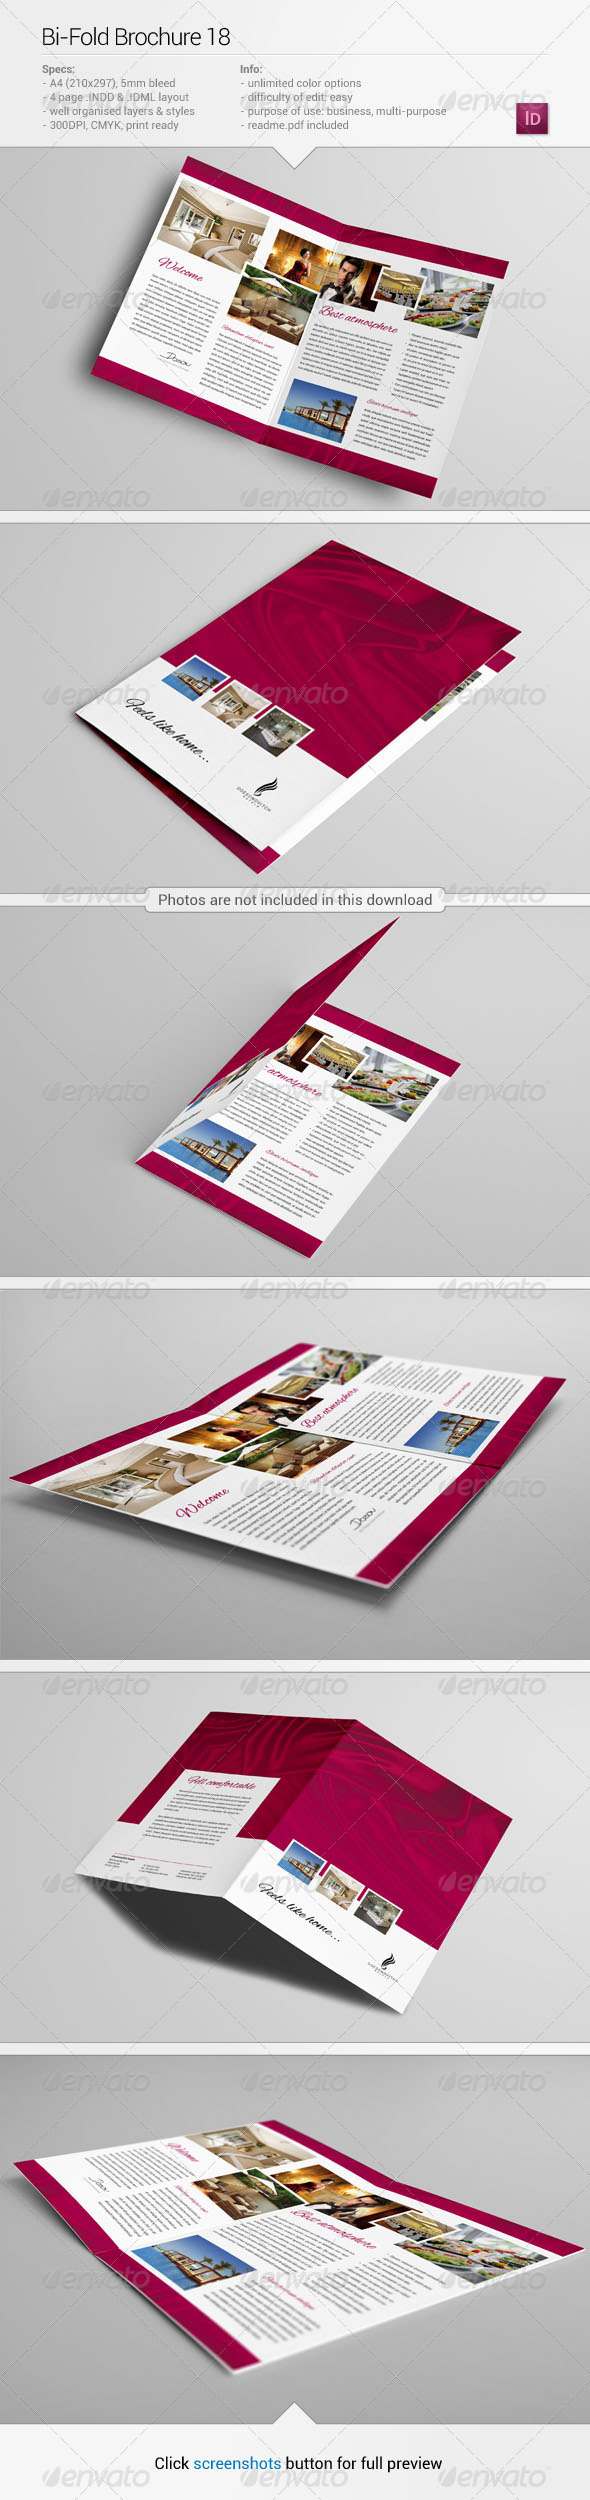 GraphicRiver Bi-Fold Brochure 18 5656300